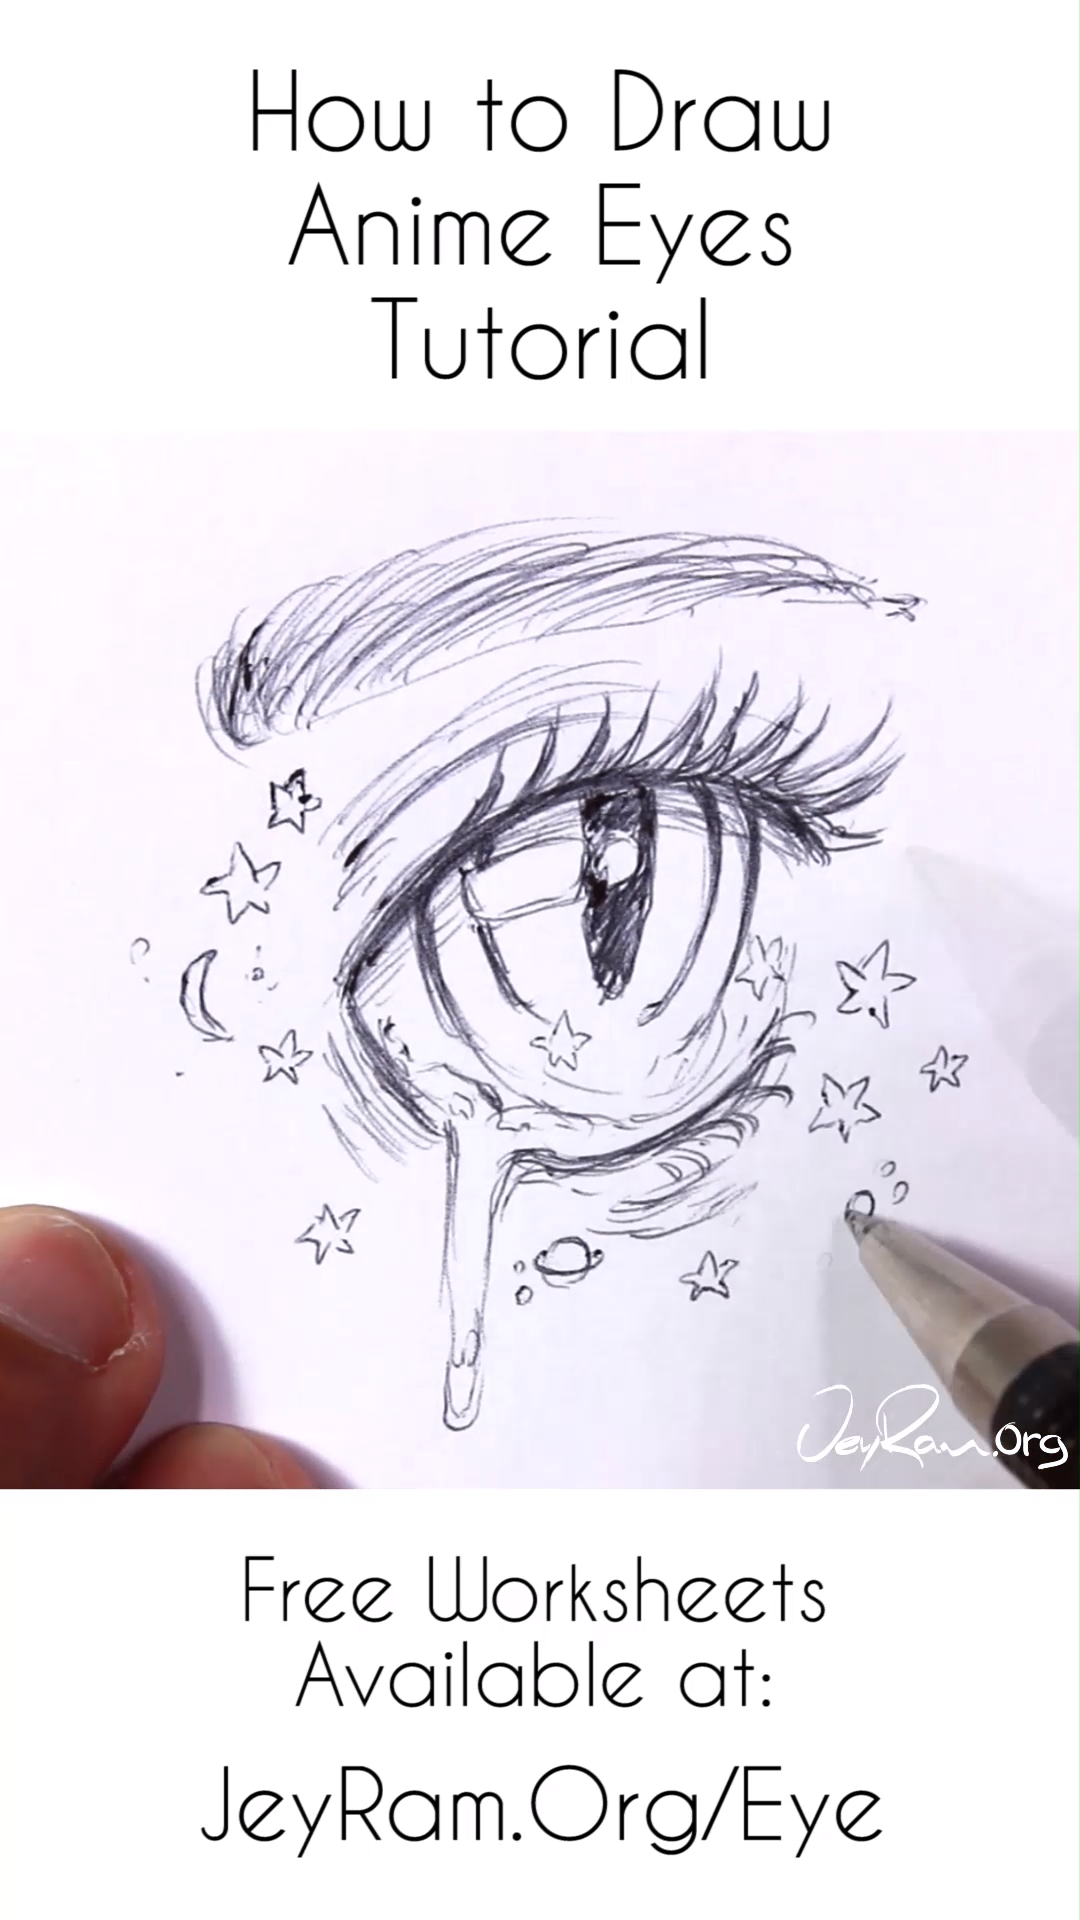 How To Draw Female Anime Eyes Step By Step For Beginners Pdf By Jeyram Anime Artdrawinga In 2020 How To Draw Anime Eyes Anime Eyes Female Anime Eyes